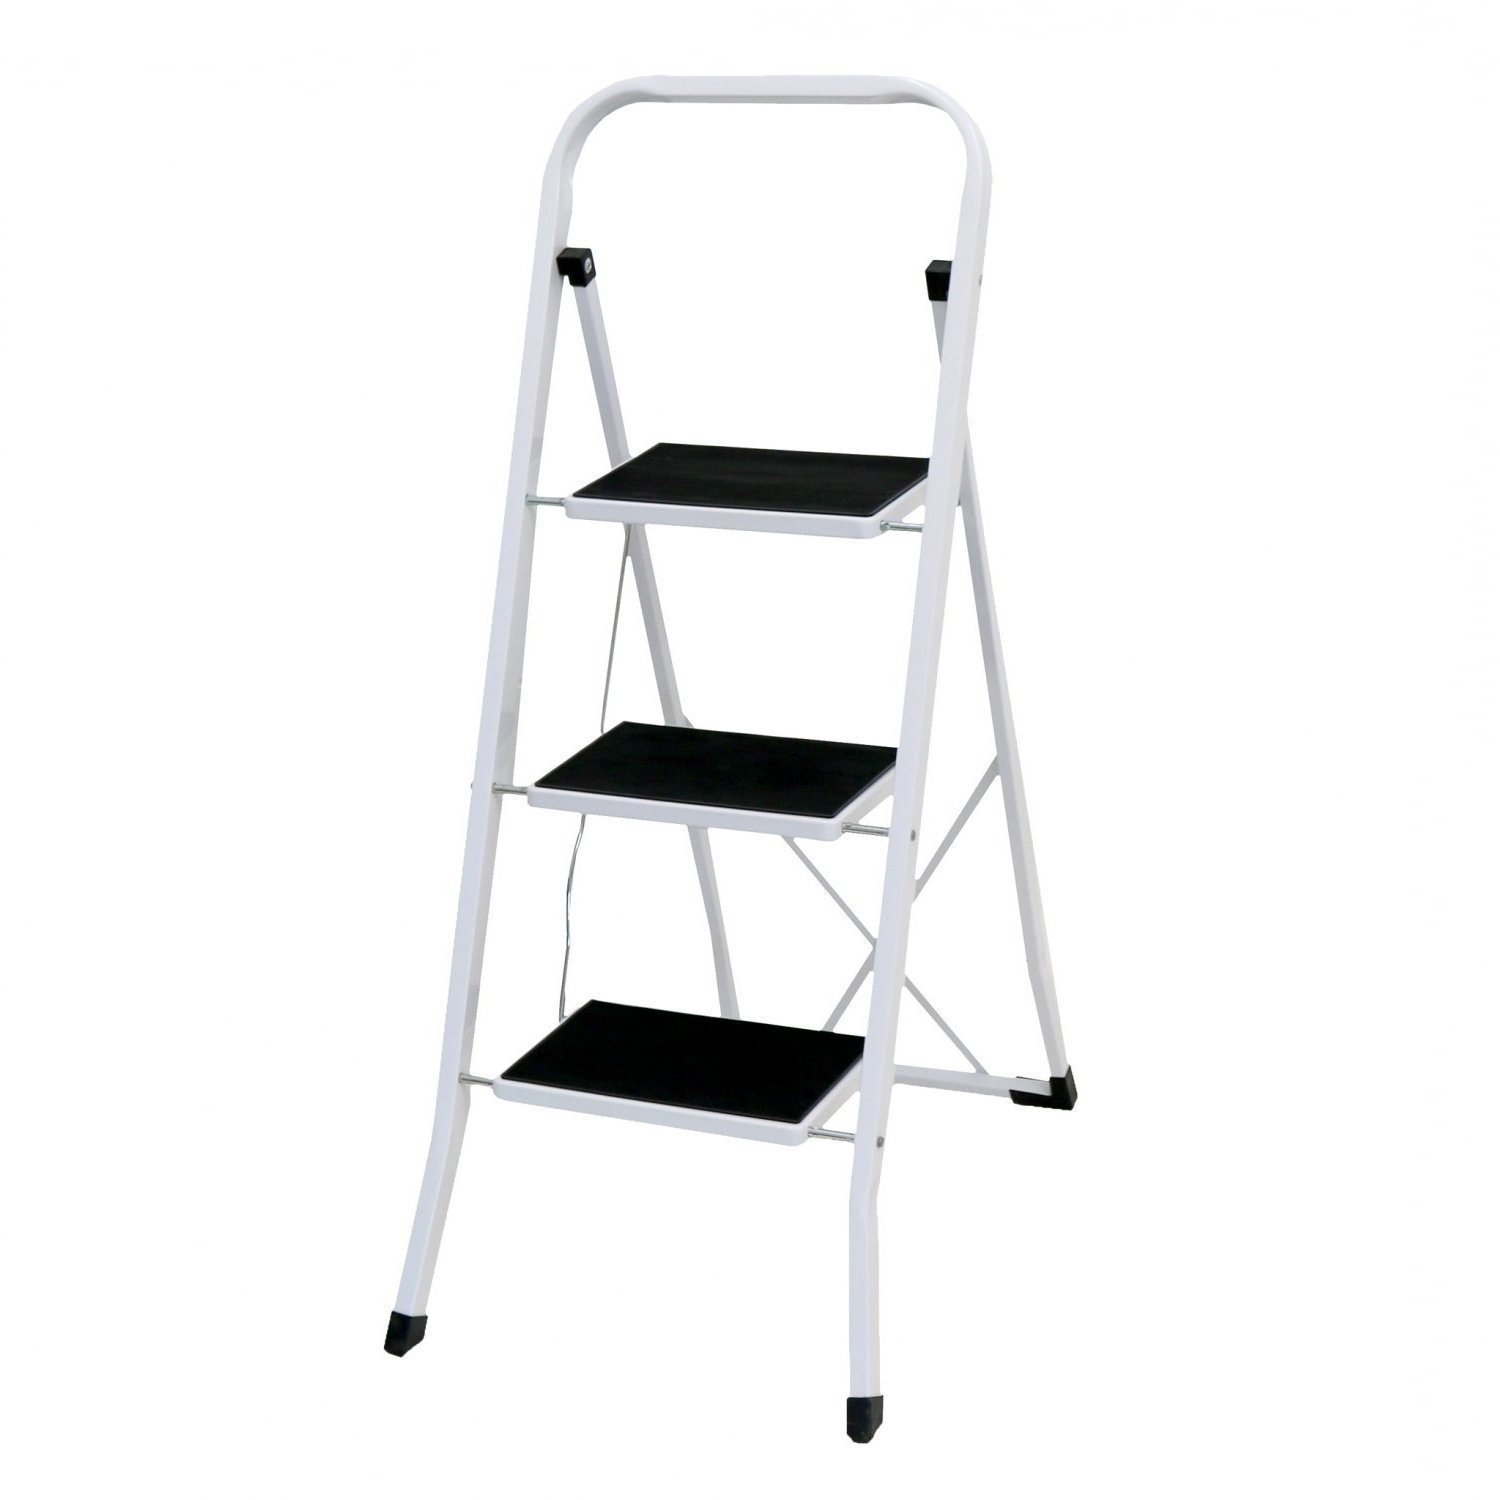 Foldable 3 Step Ladder Stepladder Non Slip Tread Safety Steel